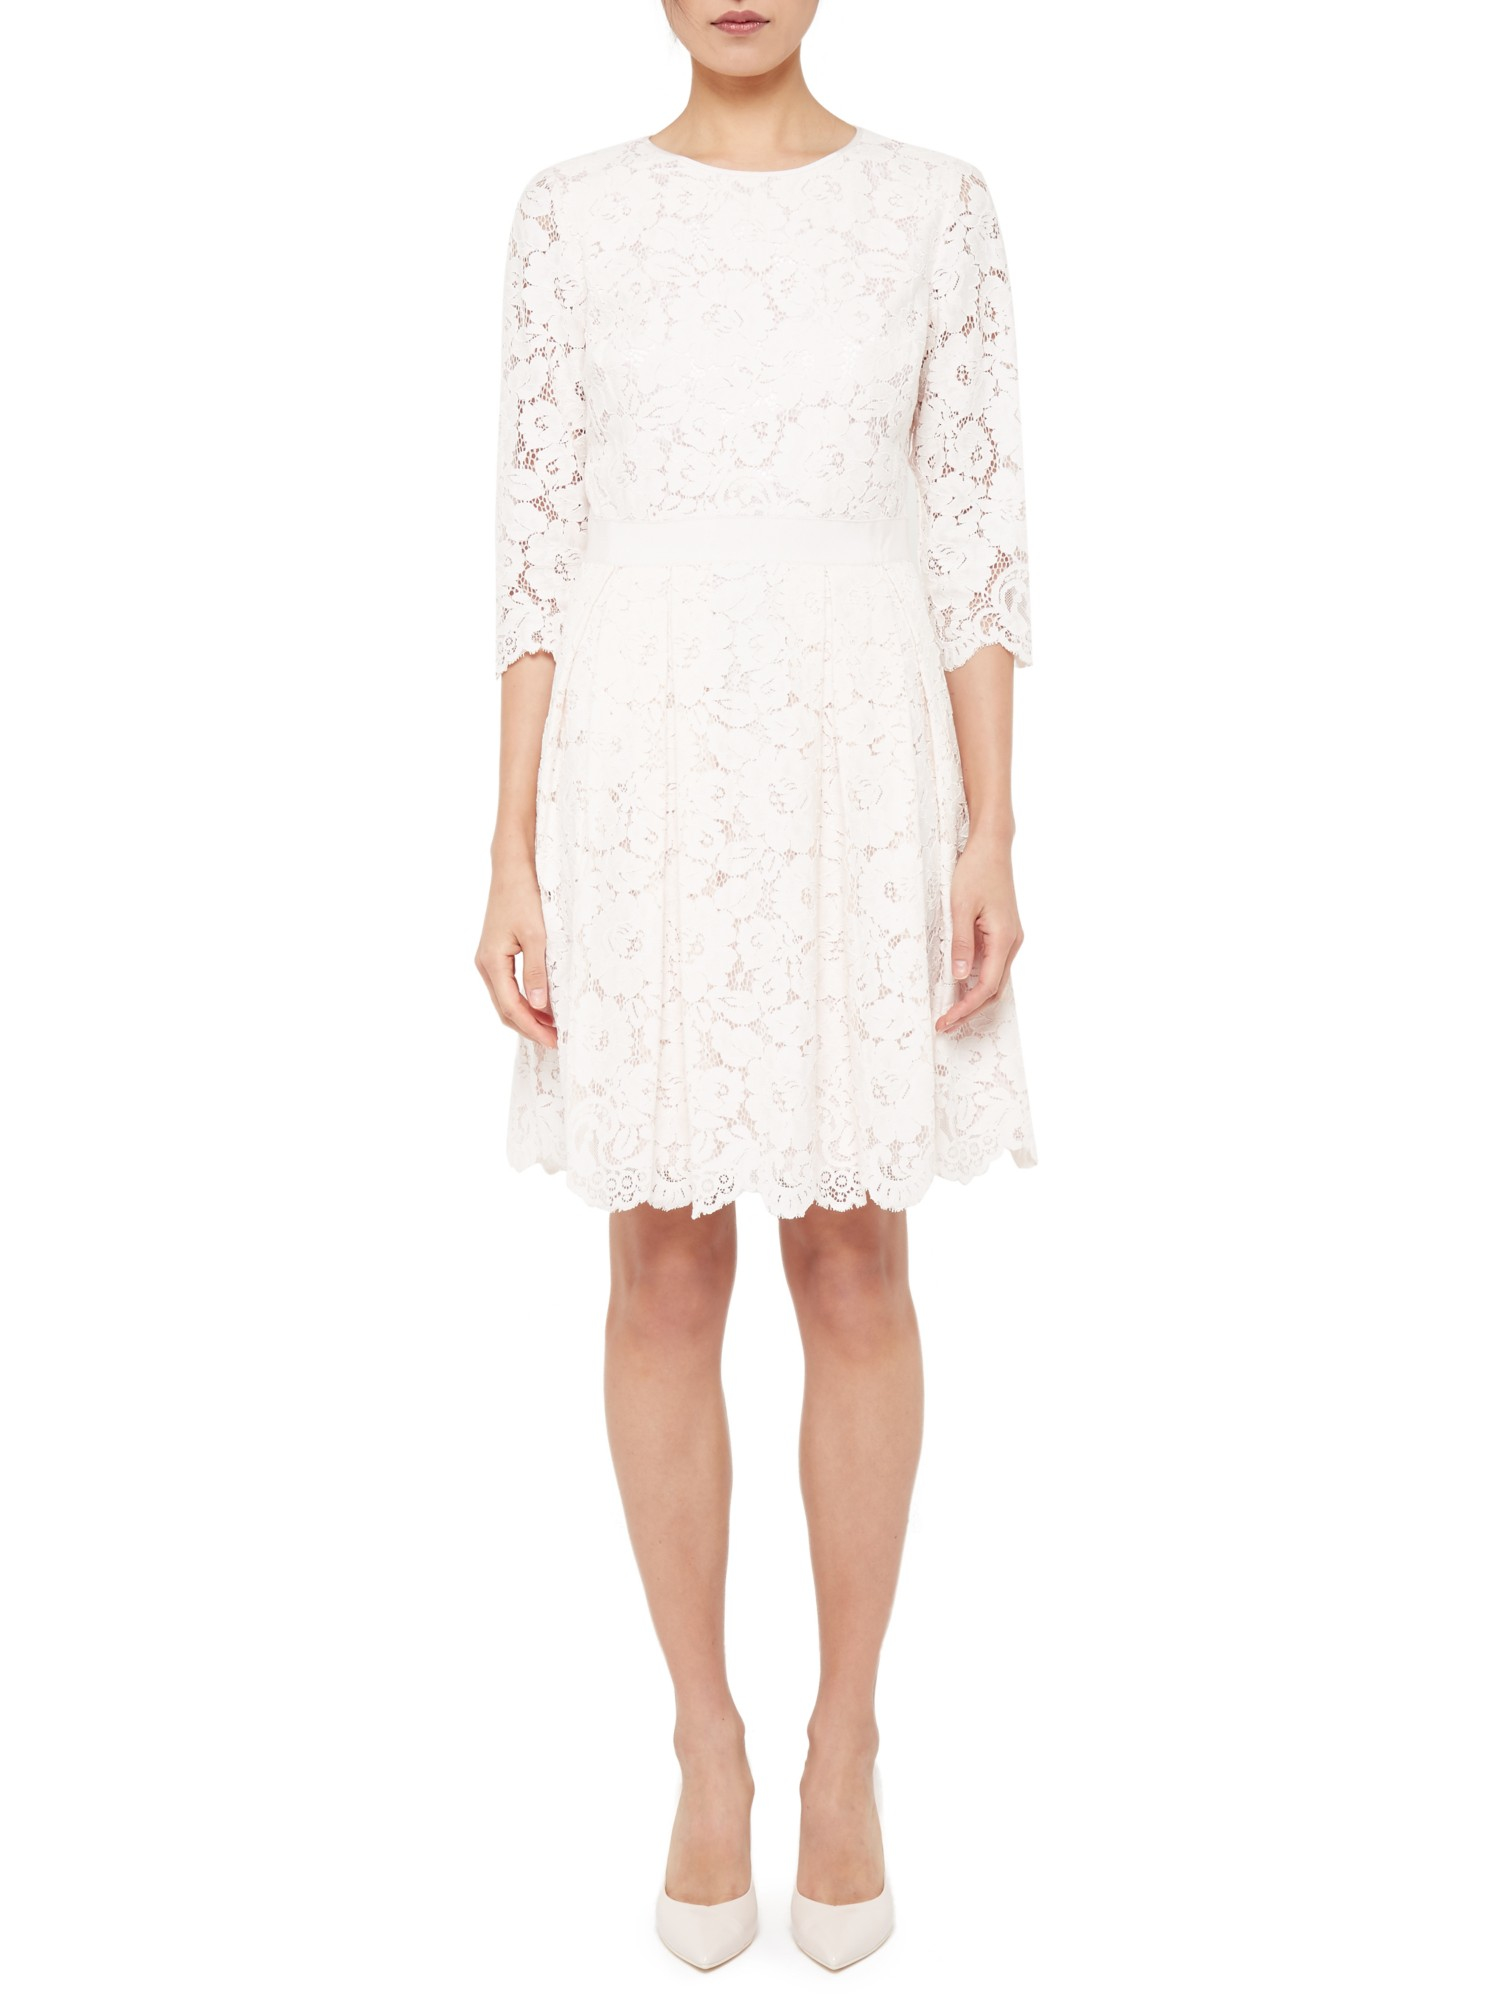 6eed8e3ca7 Ted Baker Ameeya Lace Skater Dress in Pink - Lyst